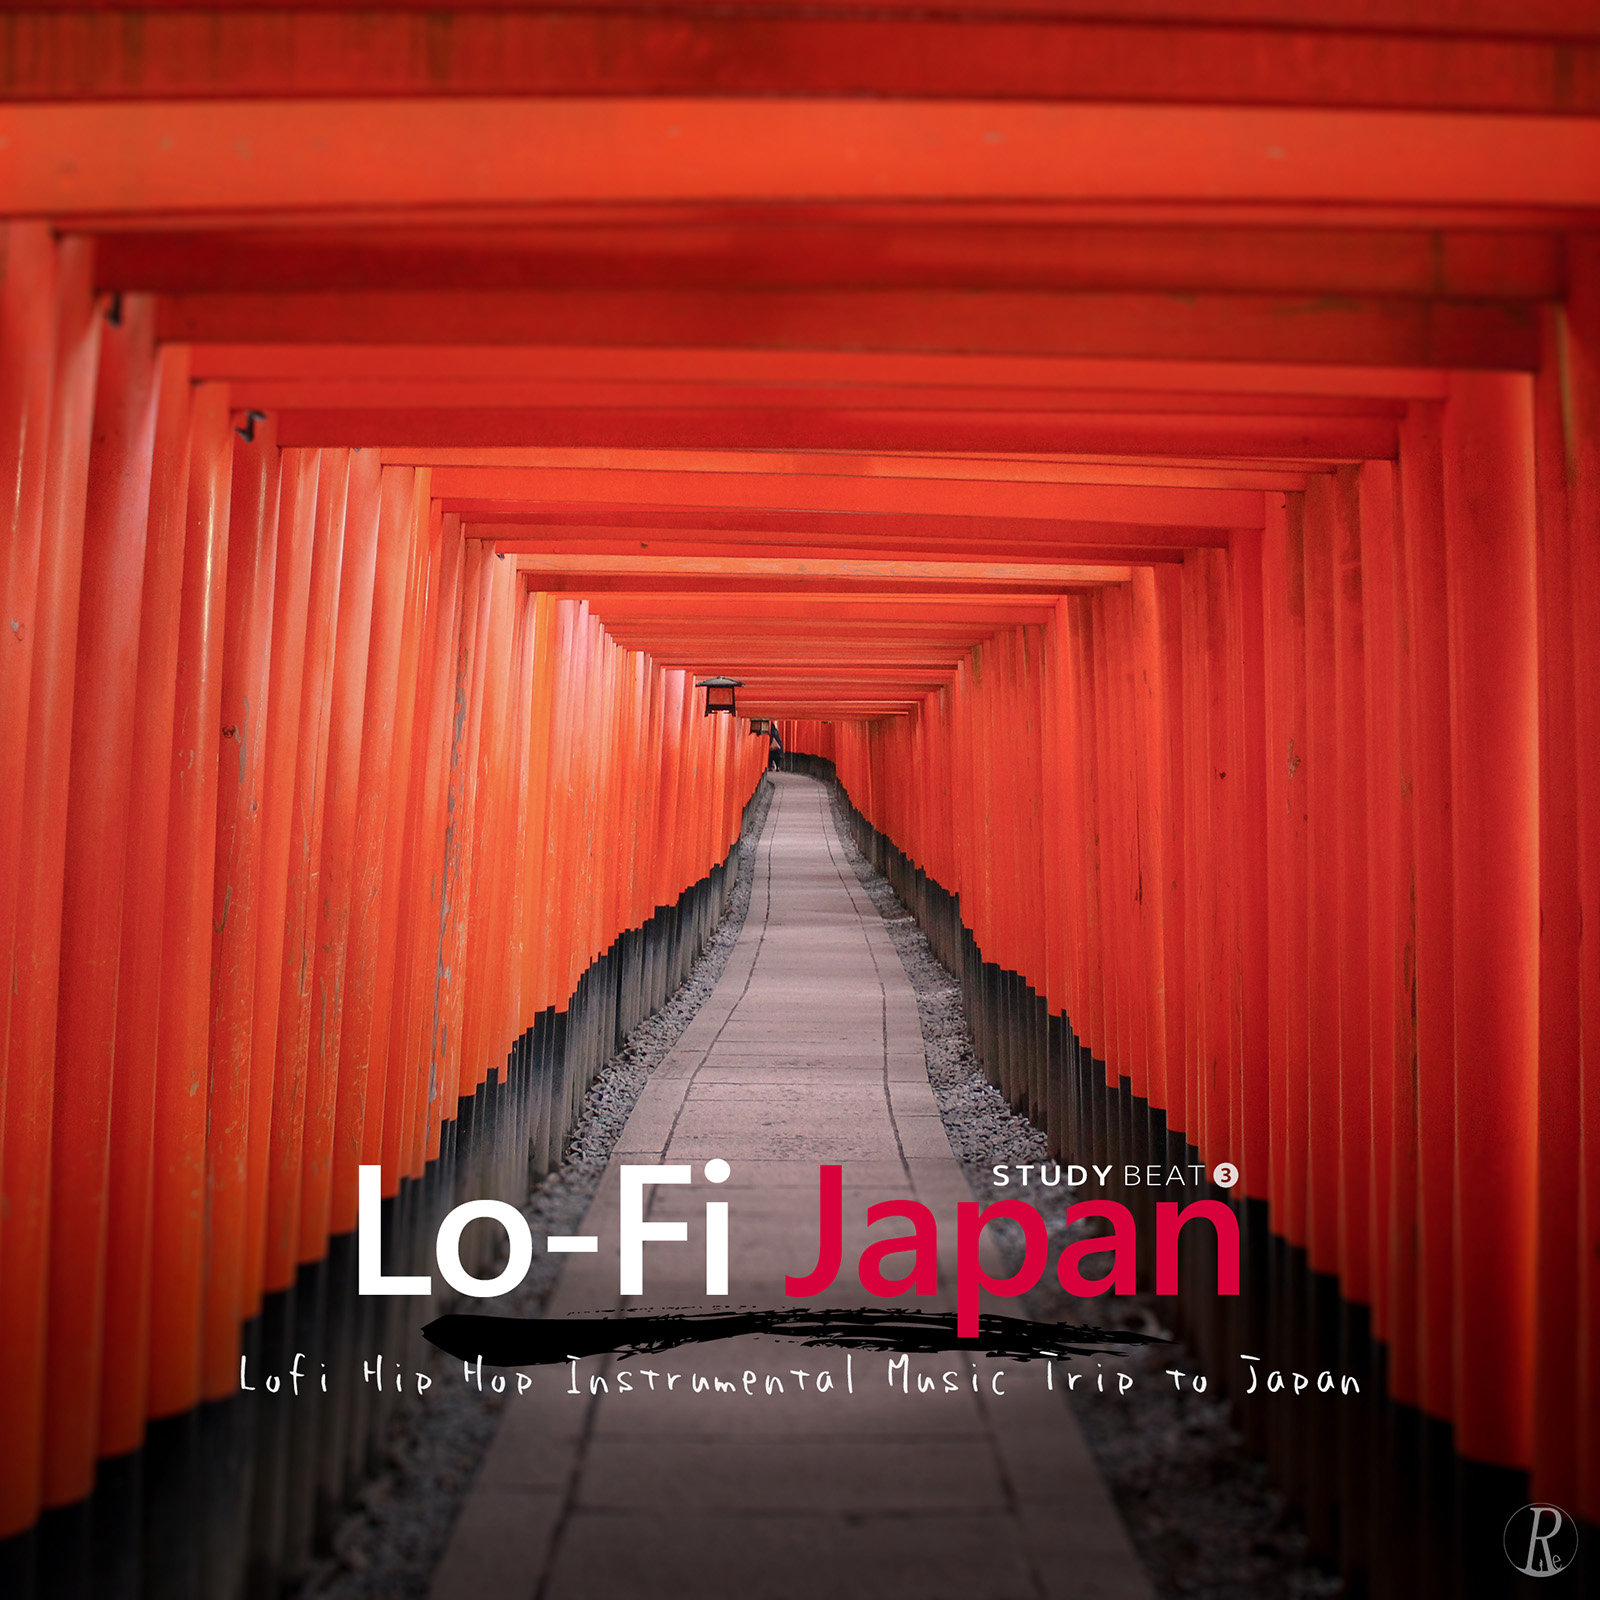 Lo-Fi Japan - Lo-Fi Japan (Lofi Hip Hop Instrumental Music Trip to Japan) - Study Beat 3